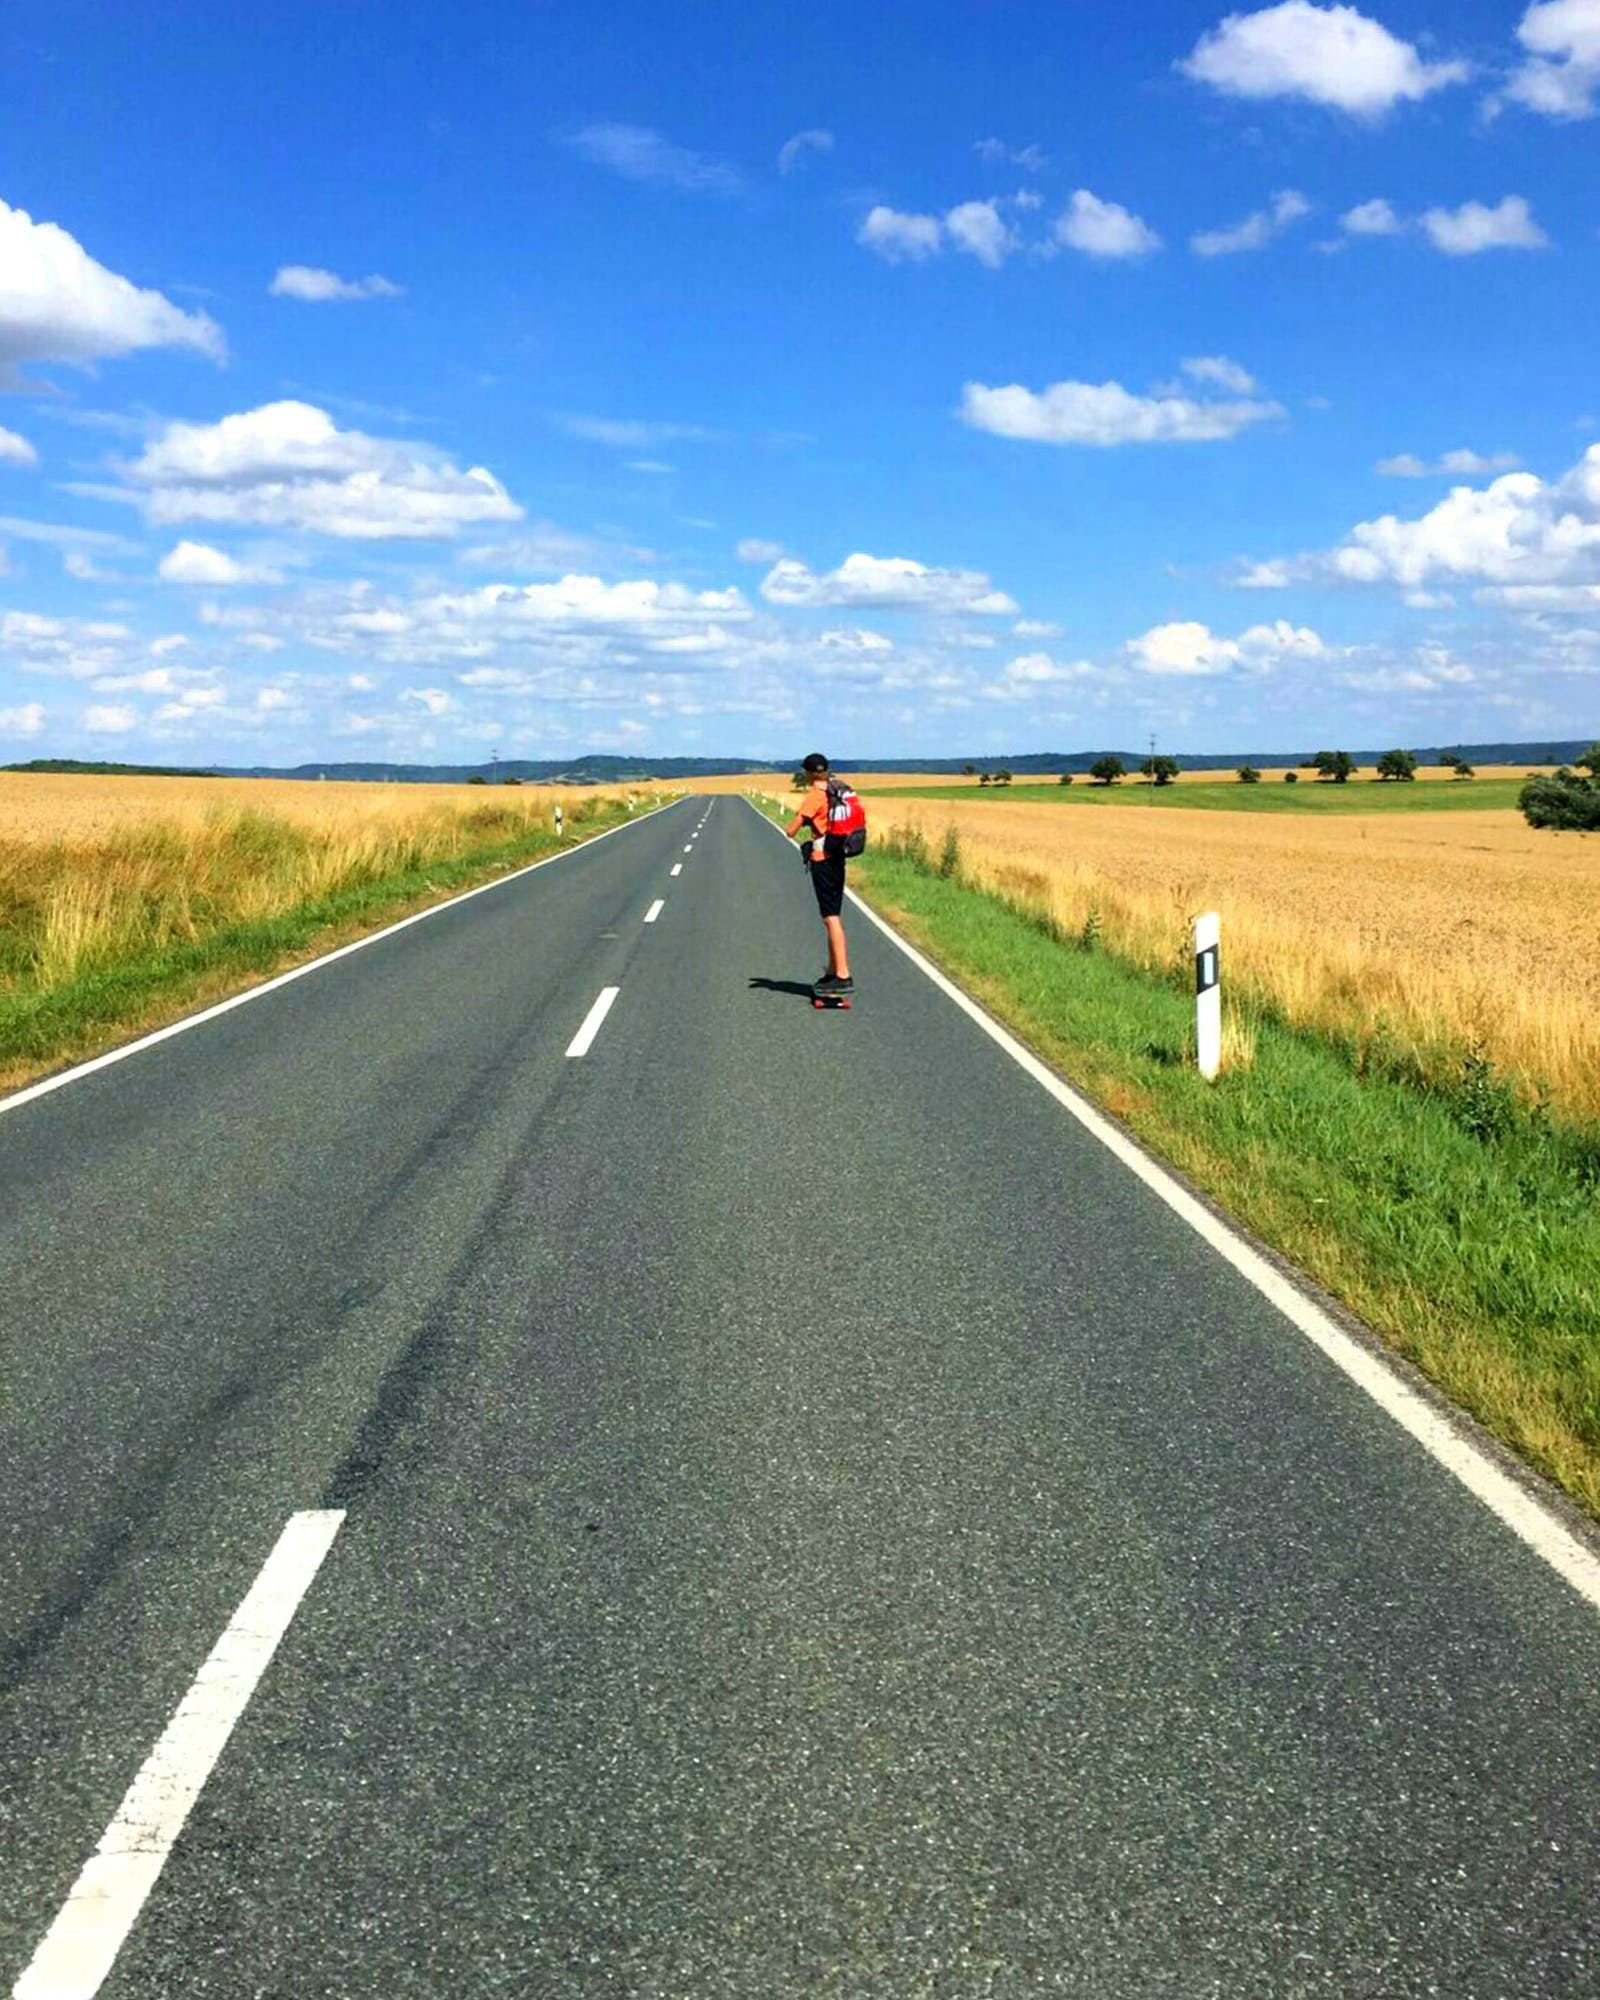 Man Cycling on Road Against Sky